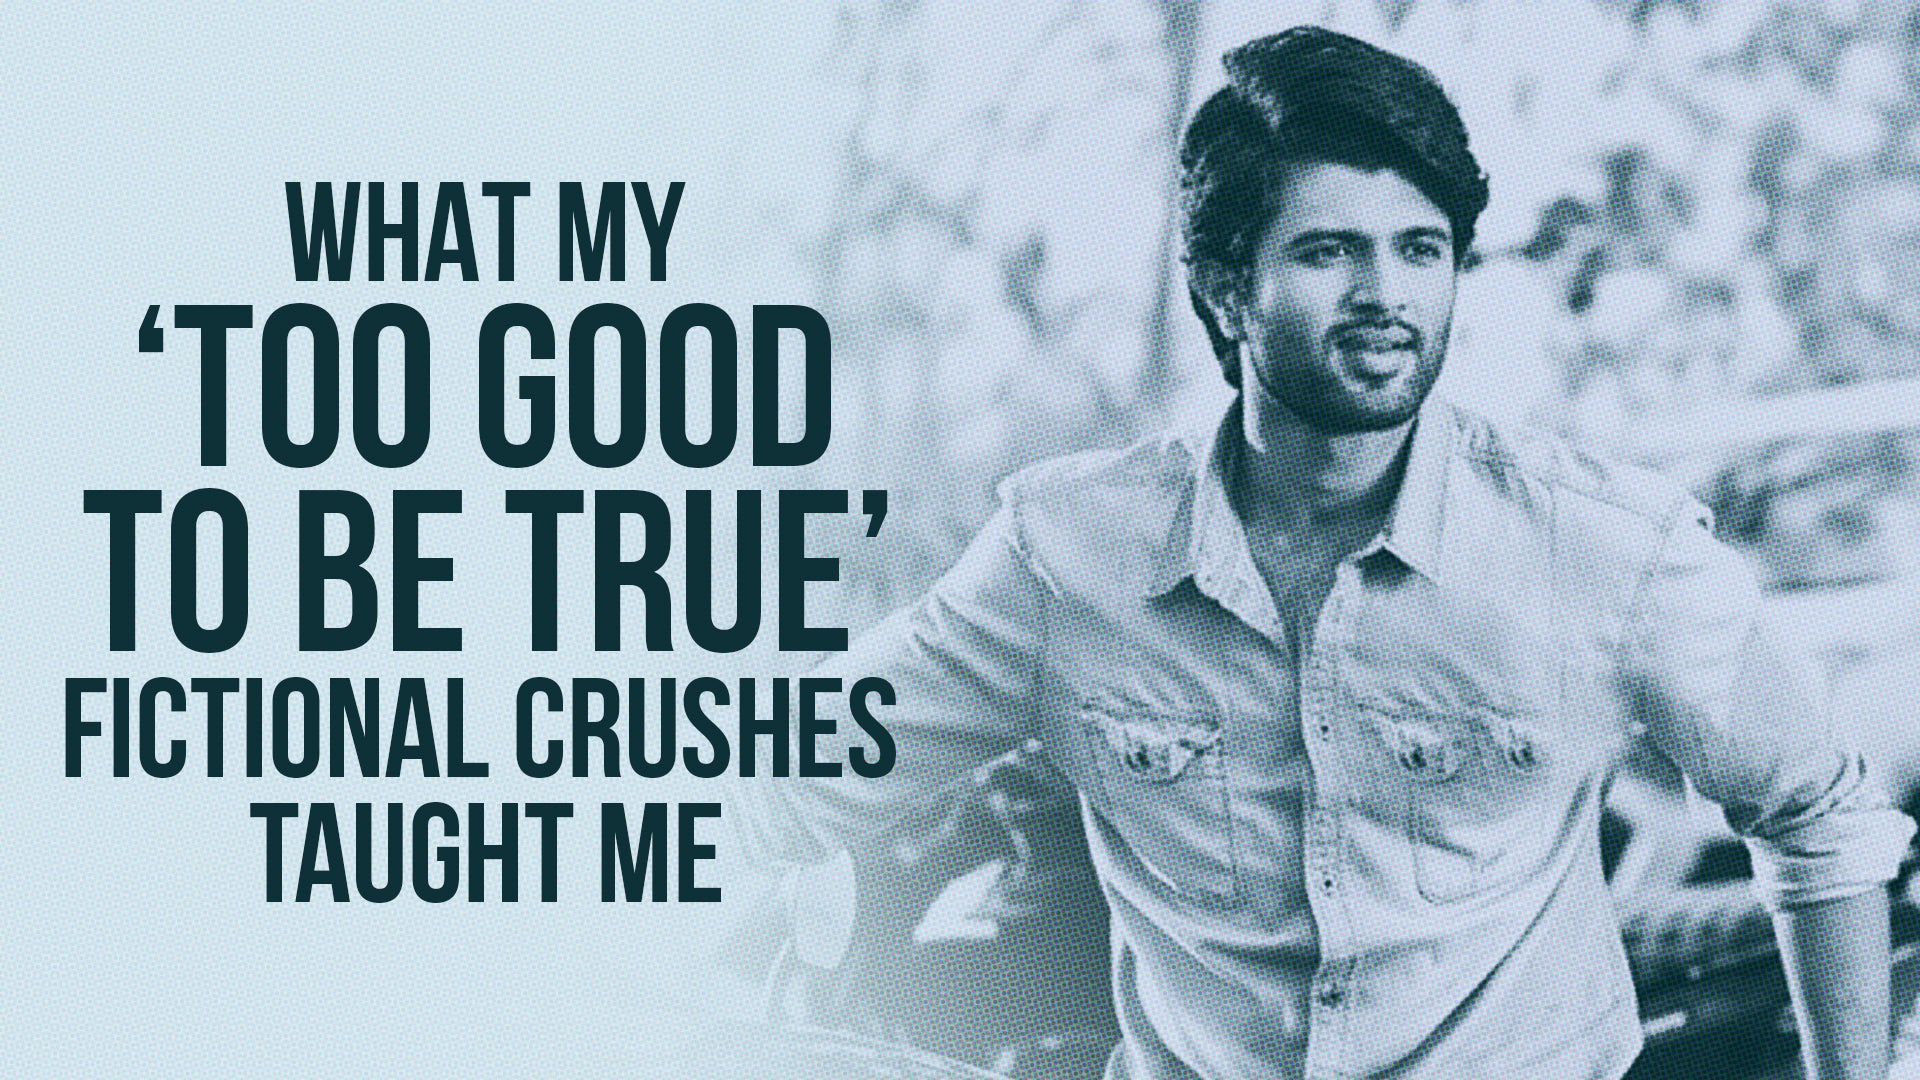 What My 'Too Good To Be True' Fictional Crushes Taught Me